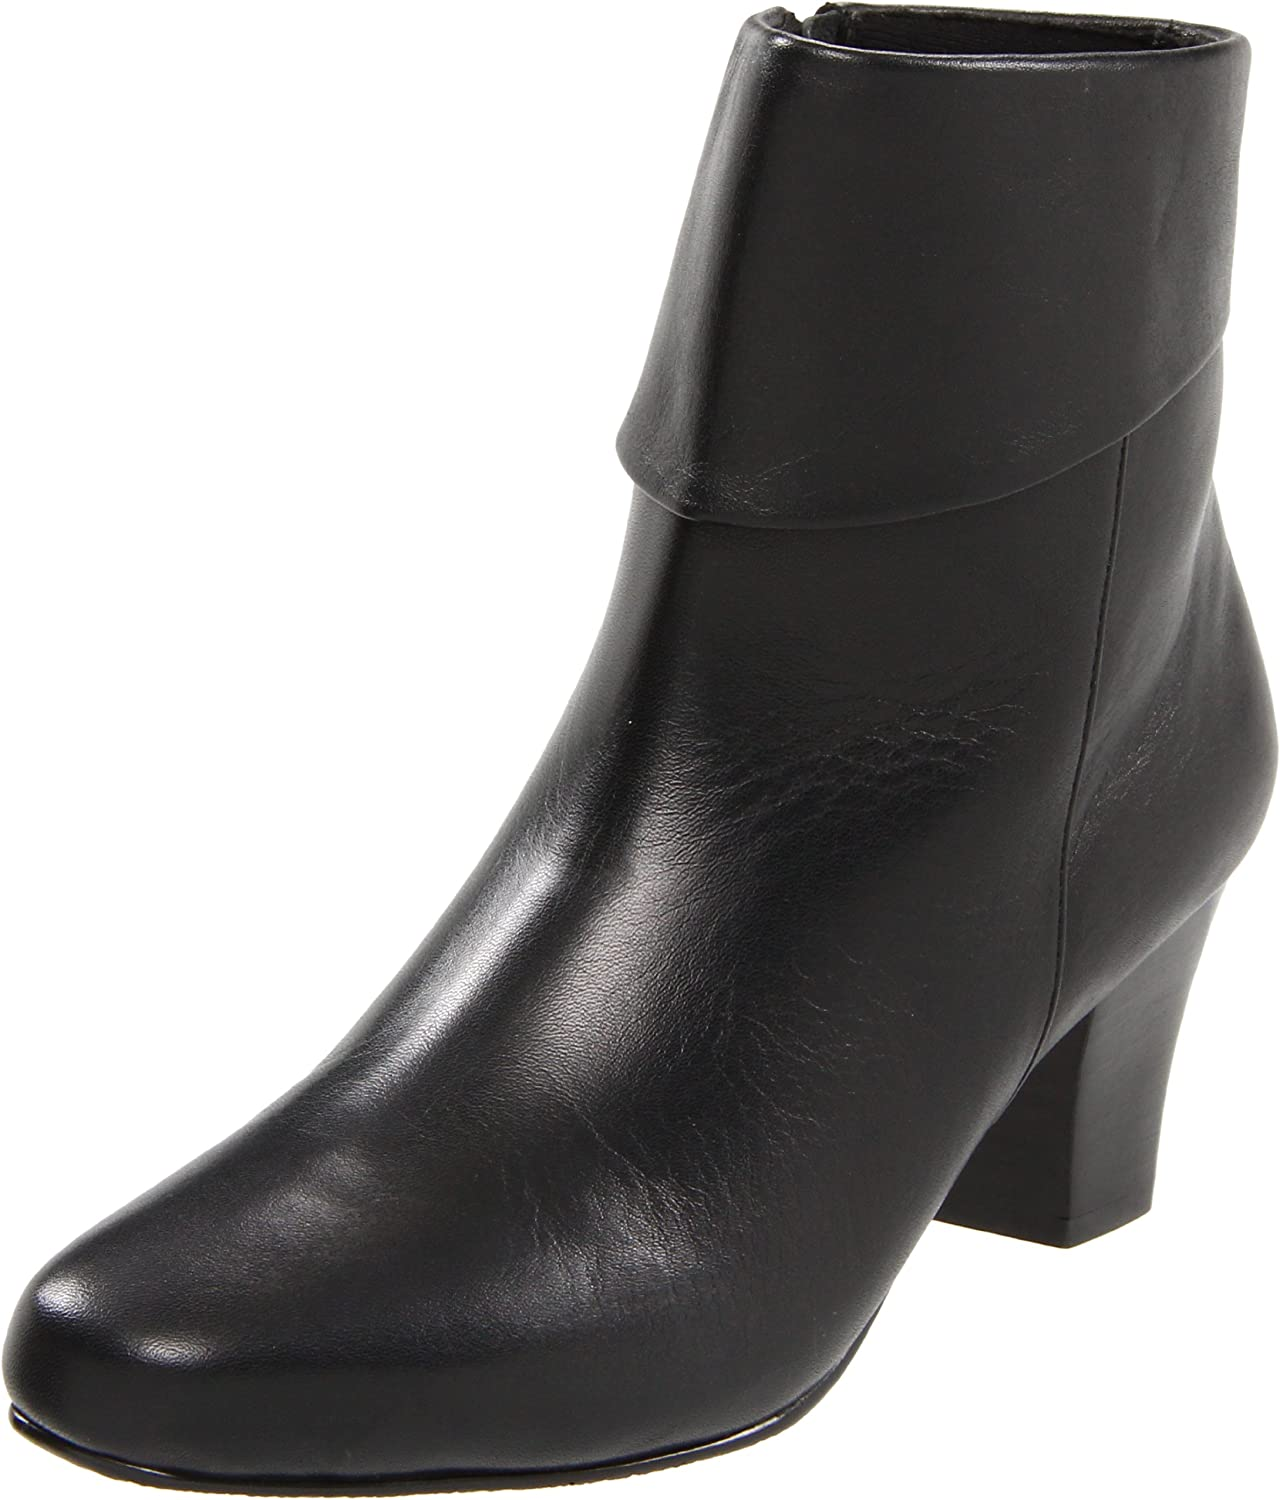 Ros Hommerson Women's McCoy Bootie